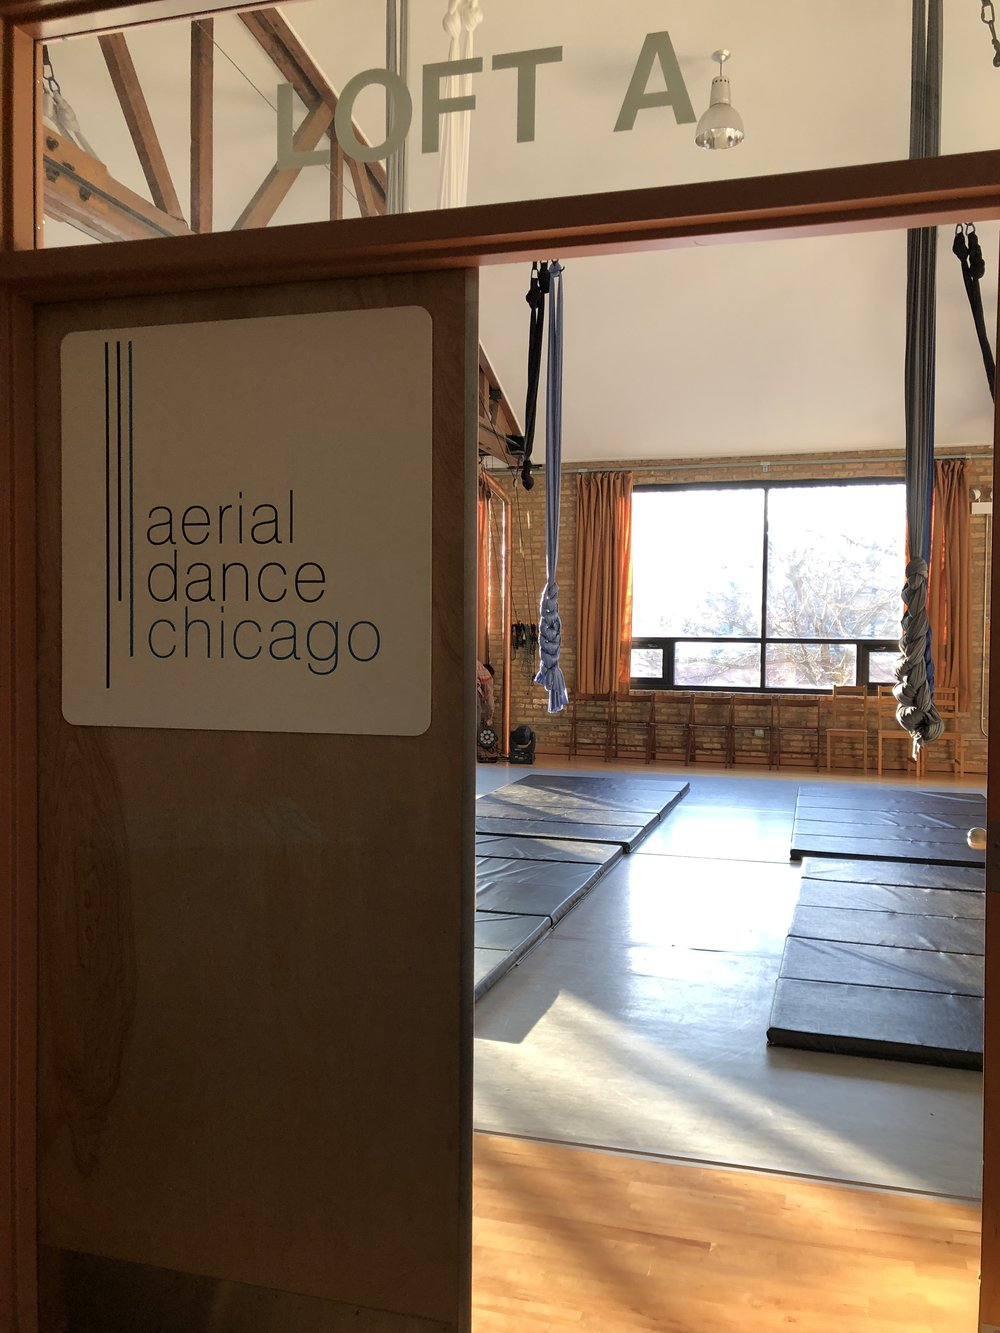 Join us at The School of Aerial Dance Chicago   Learn More